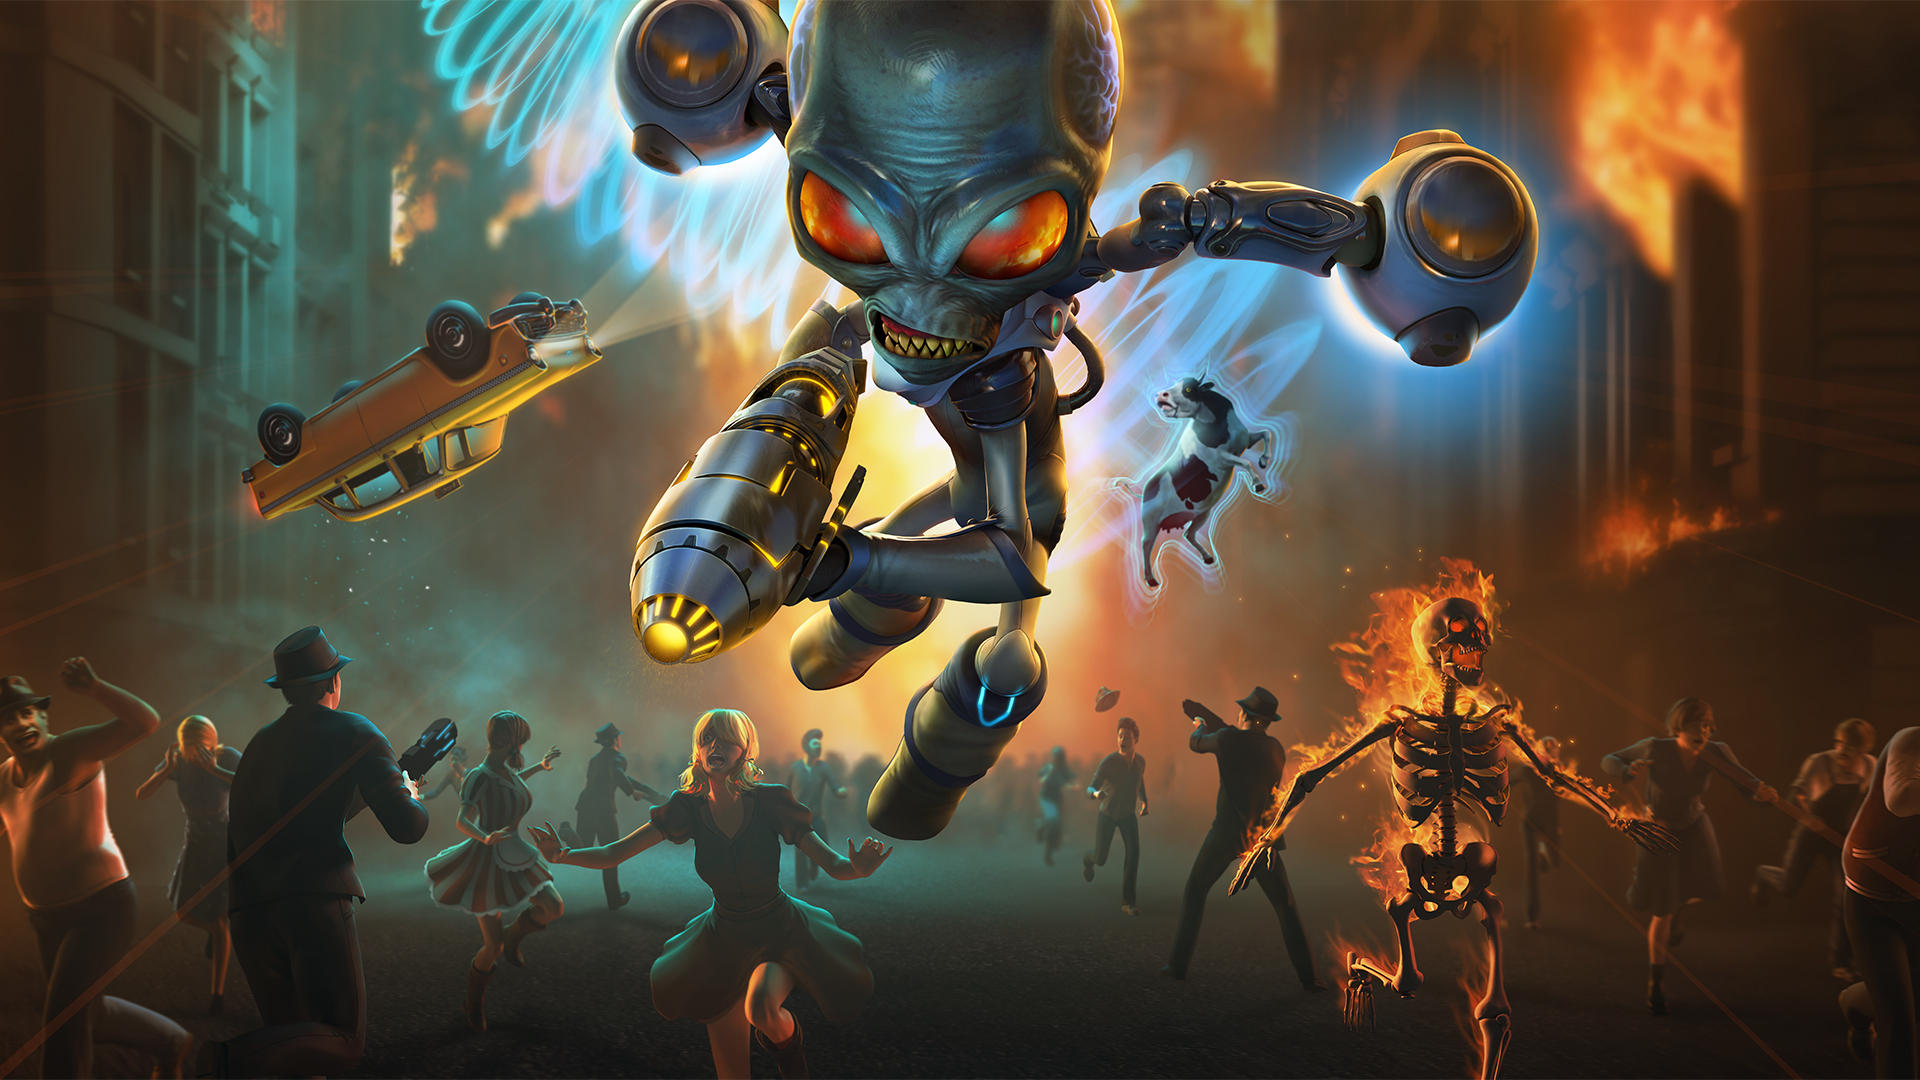 According to Johan Conradie (Destroy All Humans!), PS5 and Xbox Series X SSDs will mark a revolution